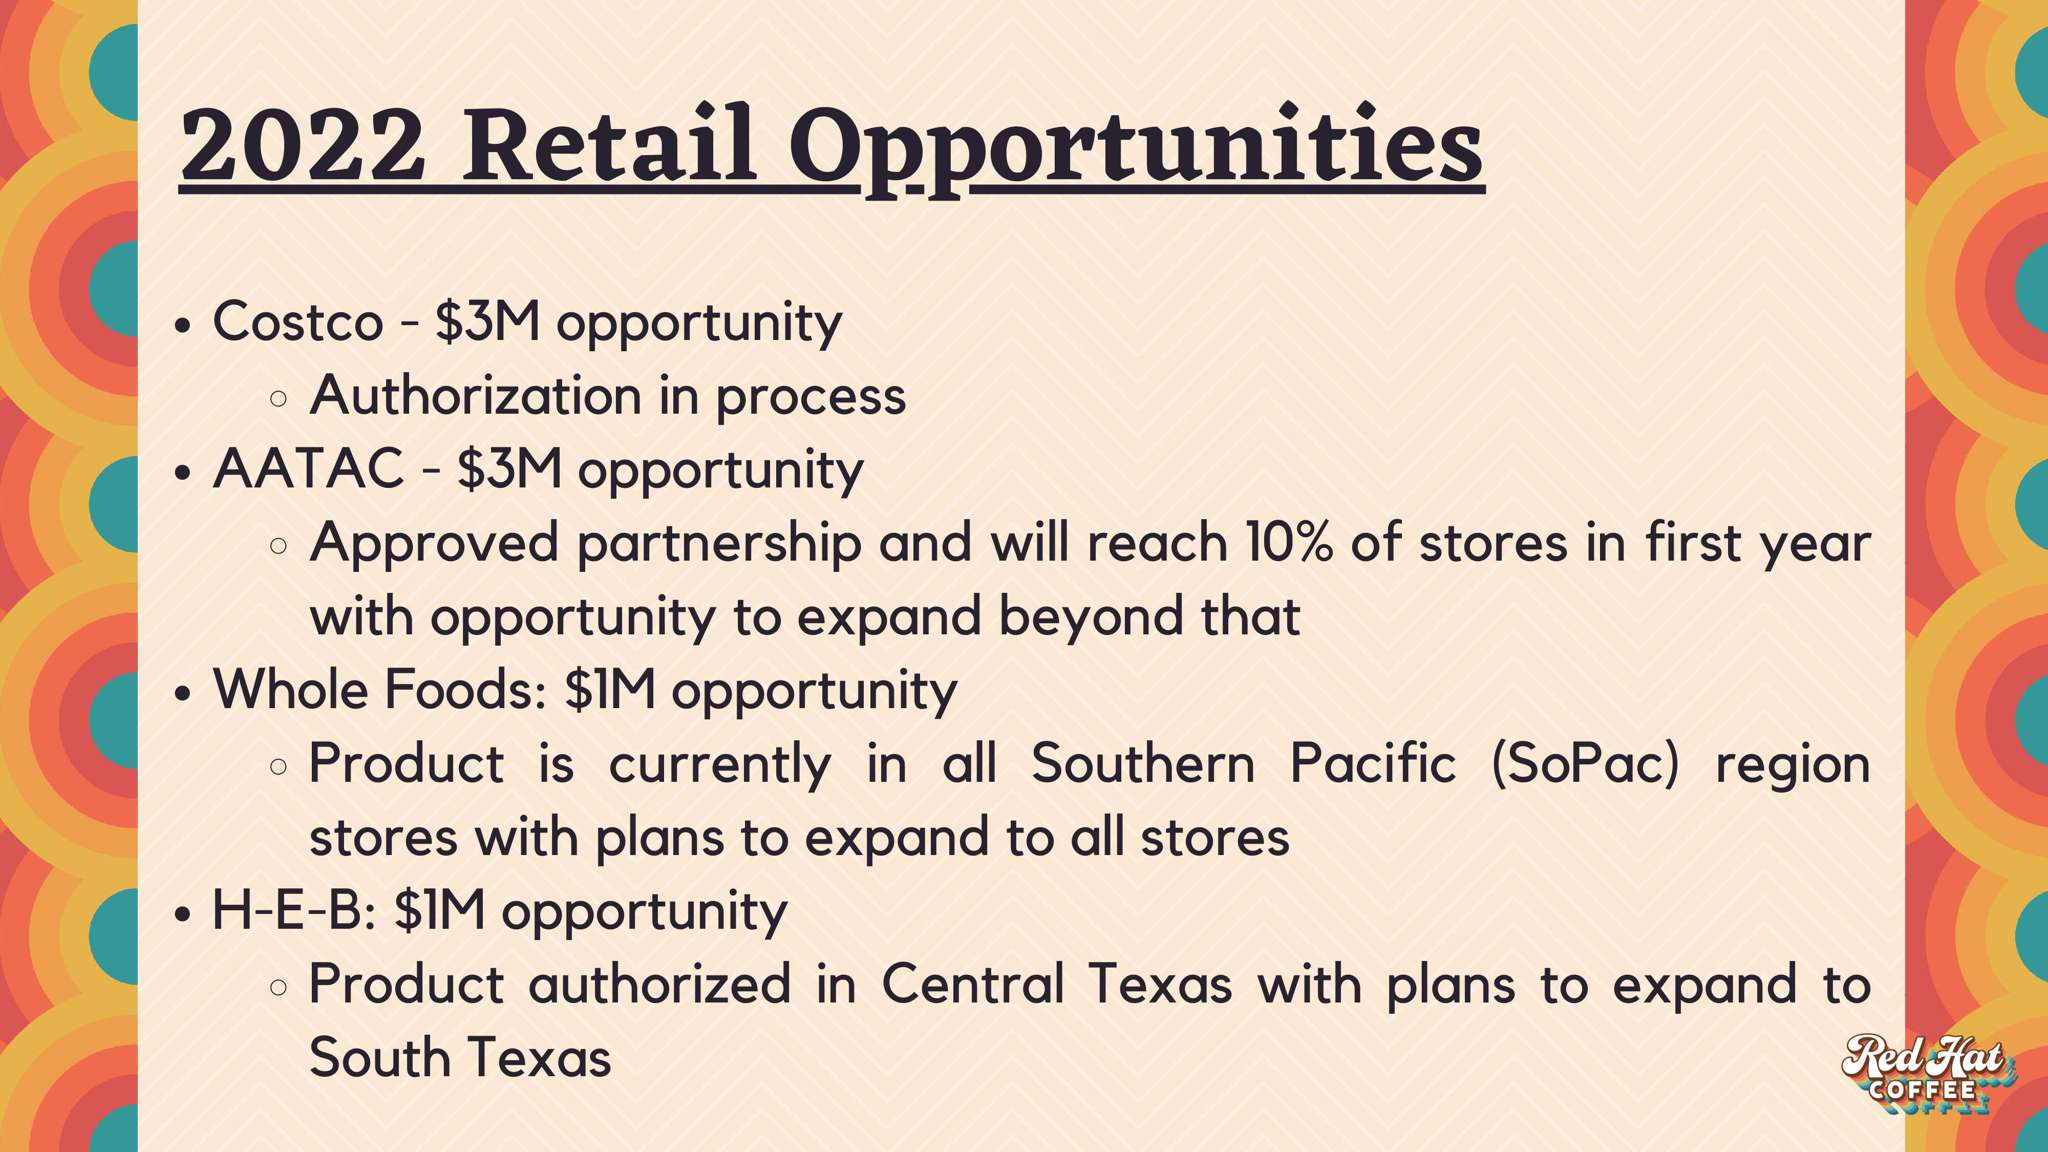 Our retail opportunities are expanding to Costco, AATAC, Whole Foods and HEB.